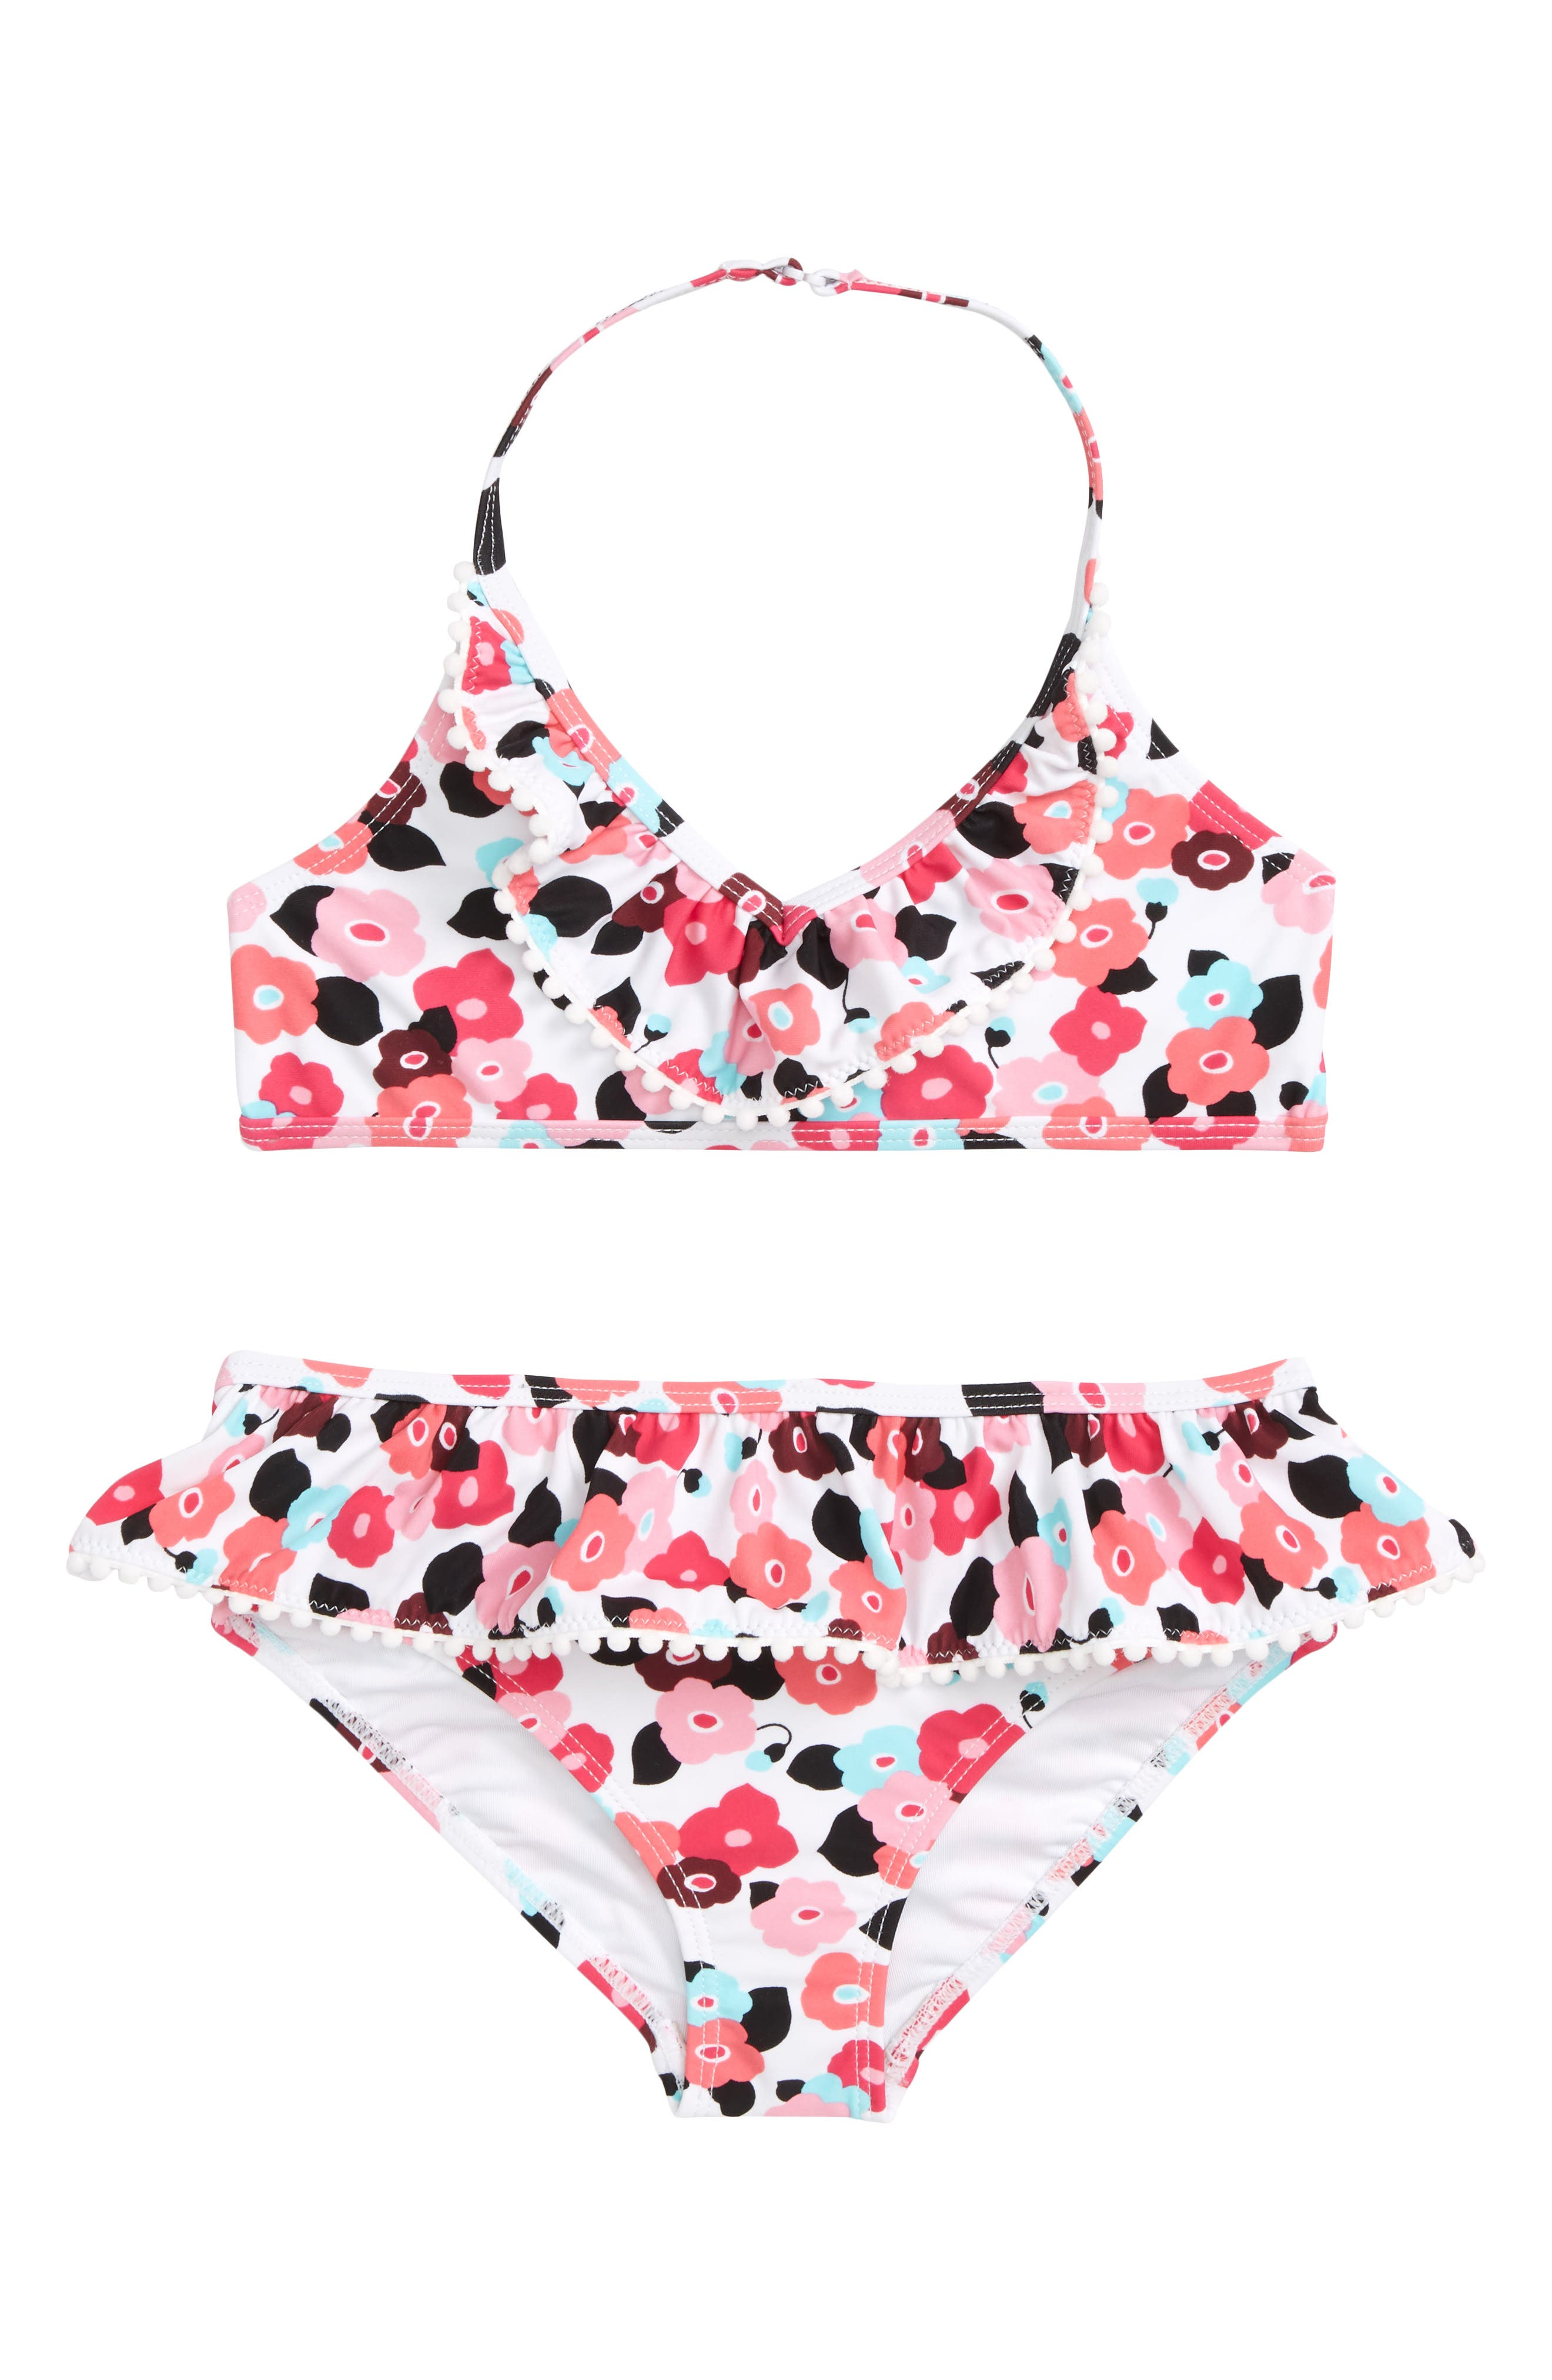 Main Image - kate spade new york blooming floral two-piece swimsuit (Toddler Girls & Little Girls)